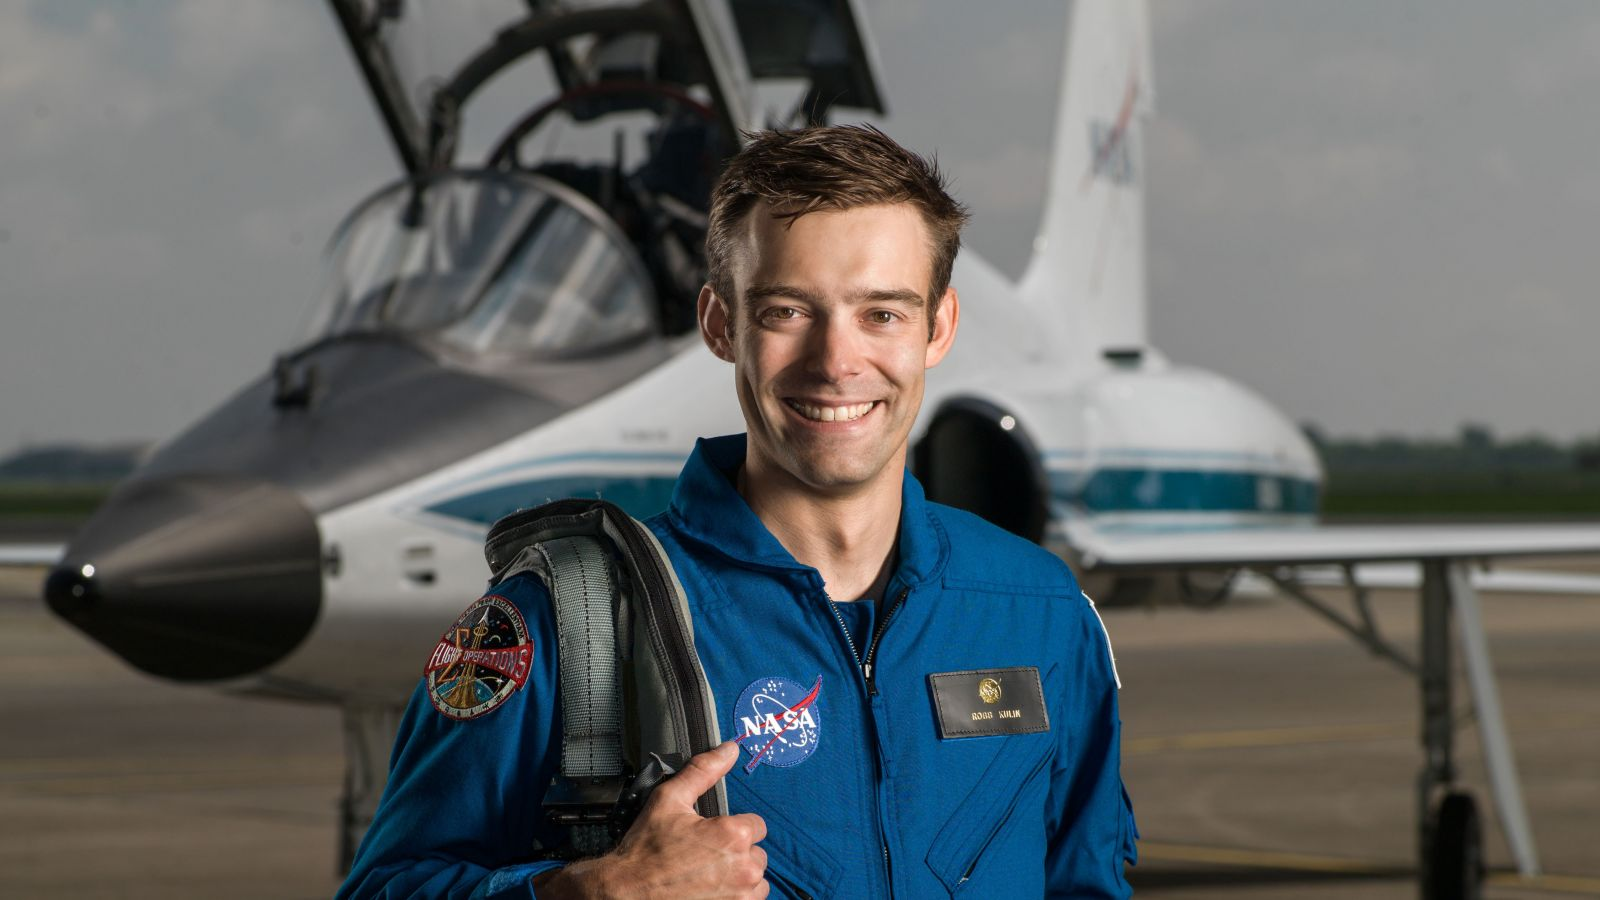 A NASA astronaut trainee just quit, the first in 50 years